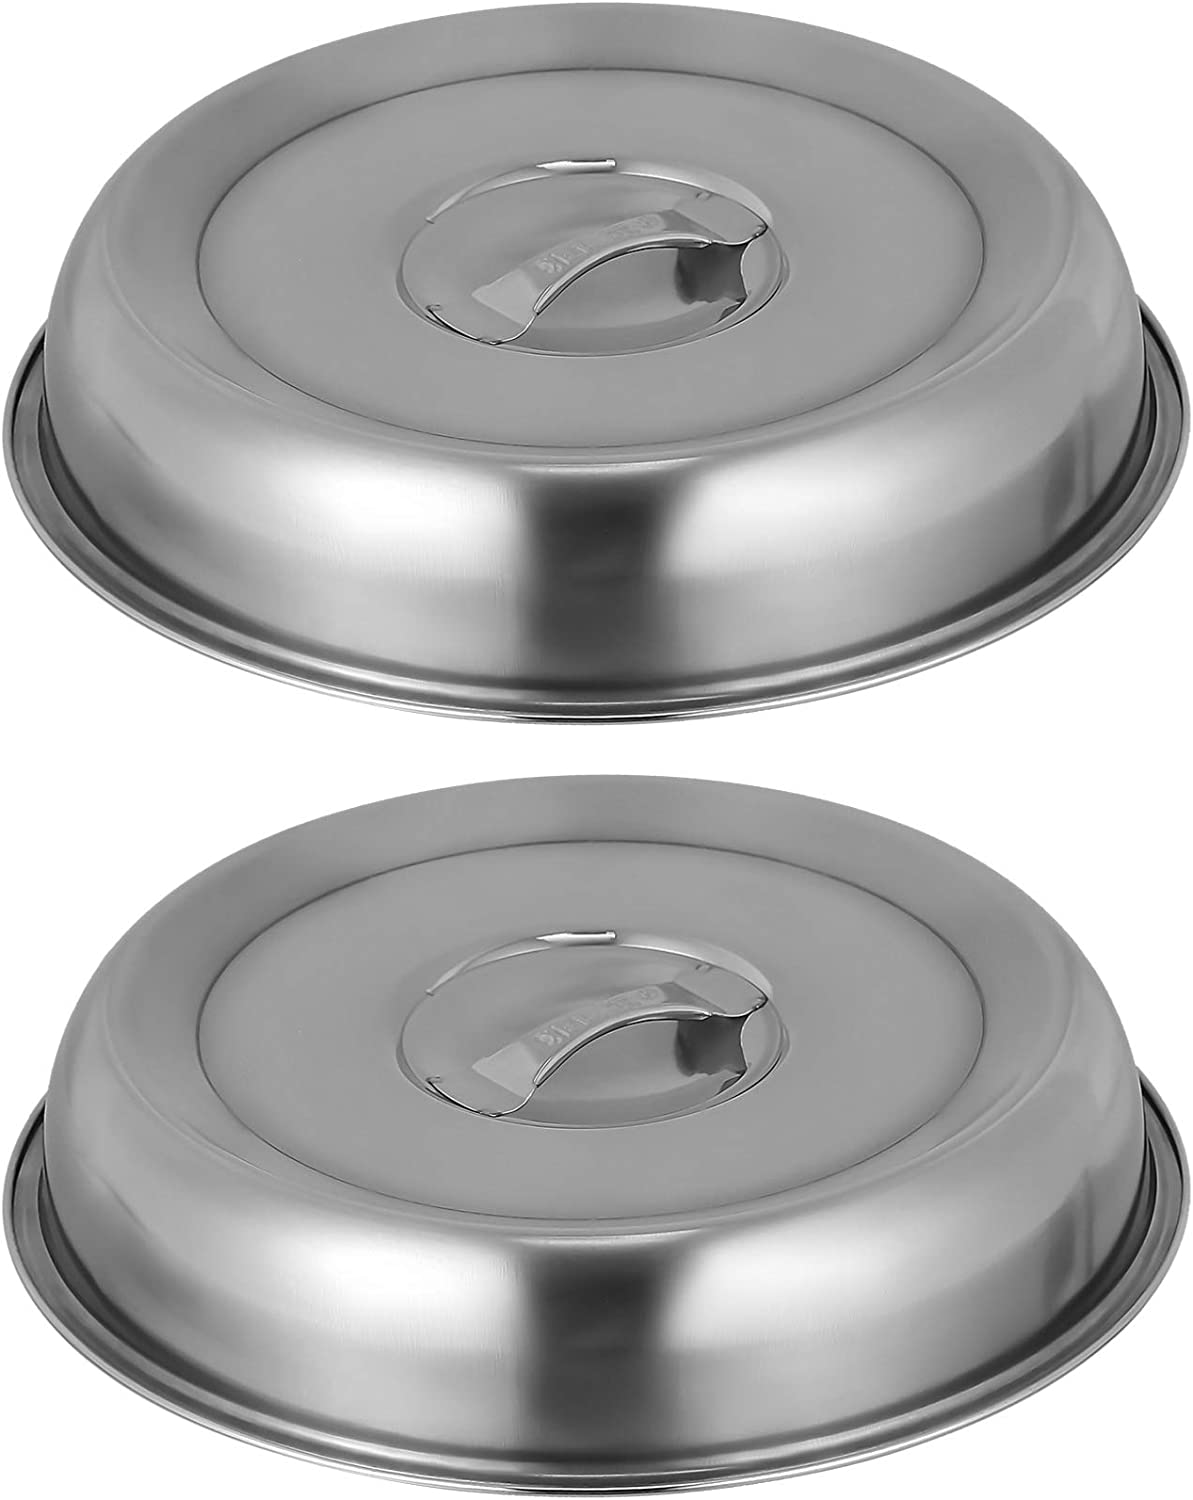 HEMOTON 2pcs Stainless Steel Basting Cover Round Cheese Melting Dome Steaming Cover Food Plate Serving Cover Protectors Pan Pot Lid for Flat Top Griddle Grill Smoker 20CM